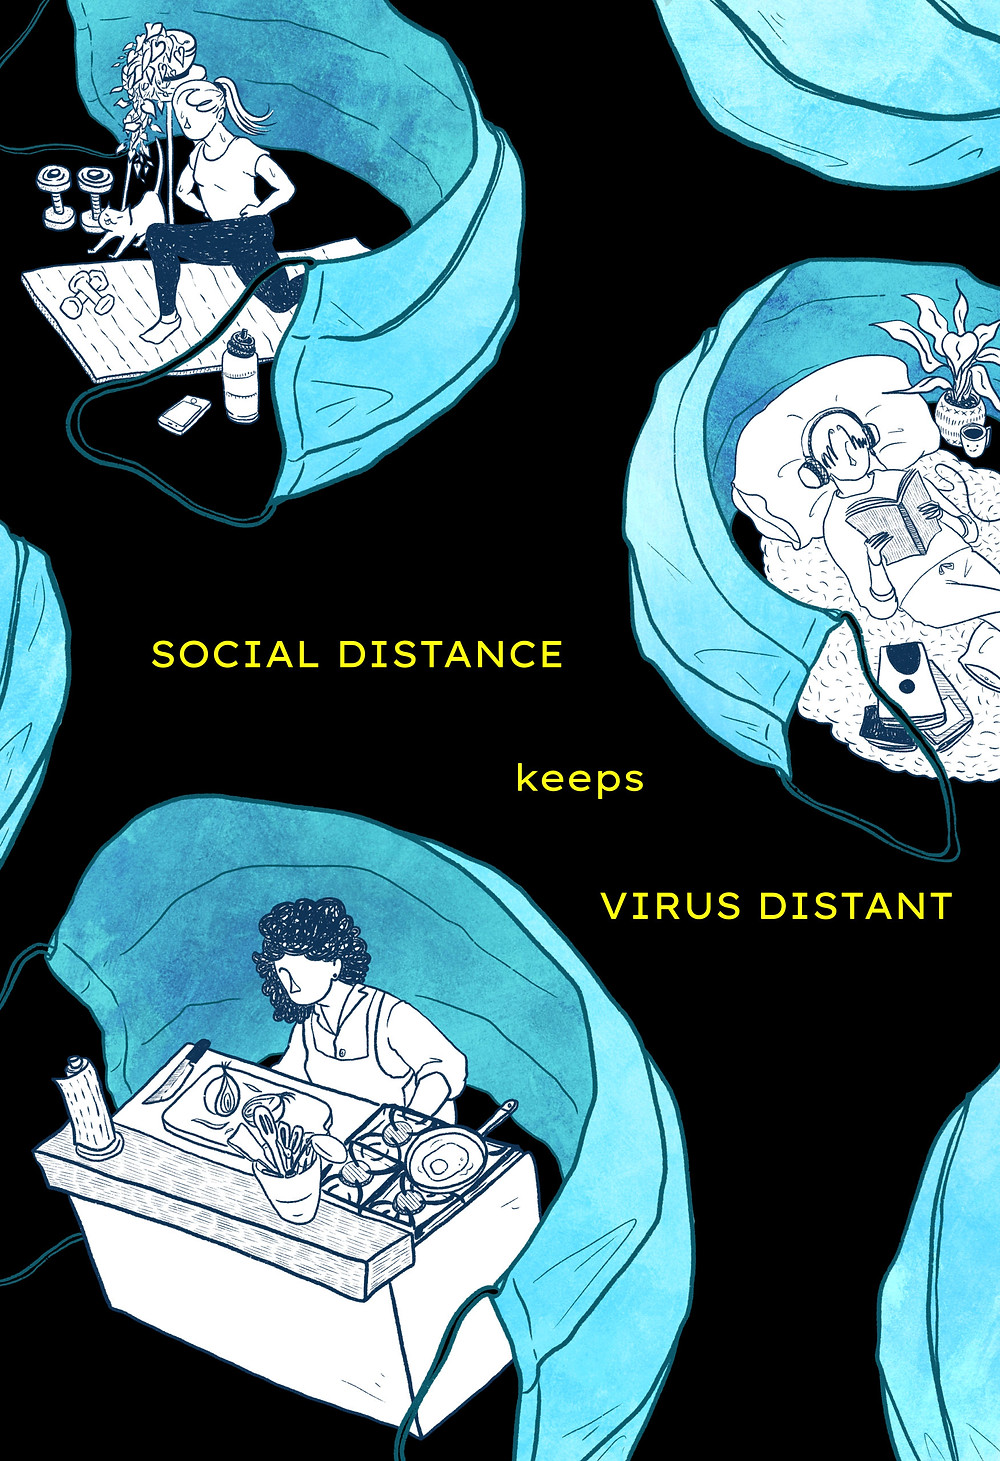 Social Distance keeps Virus distant